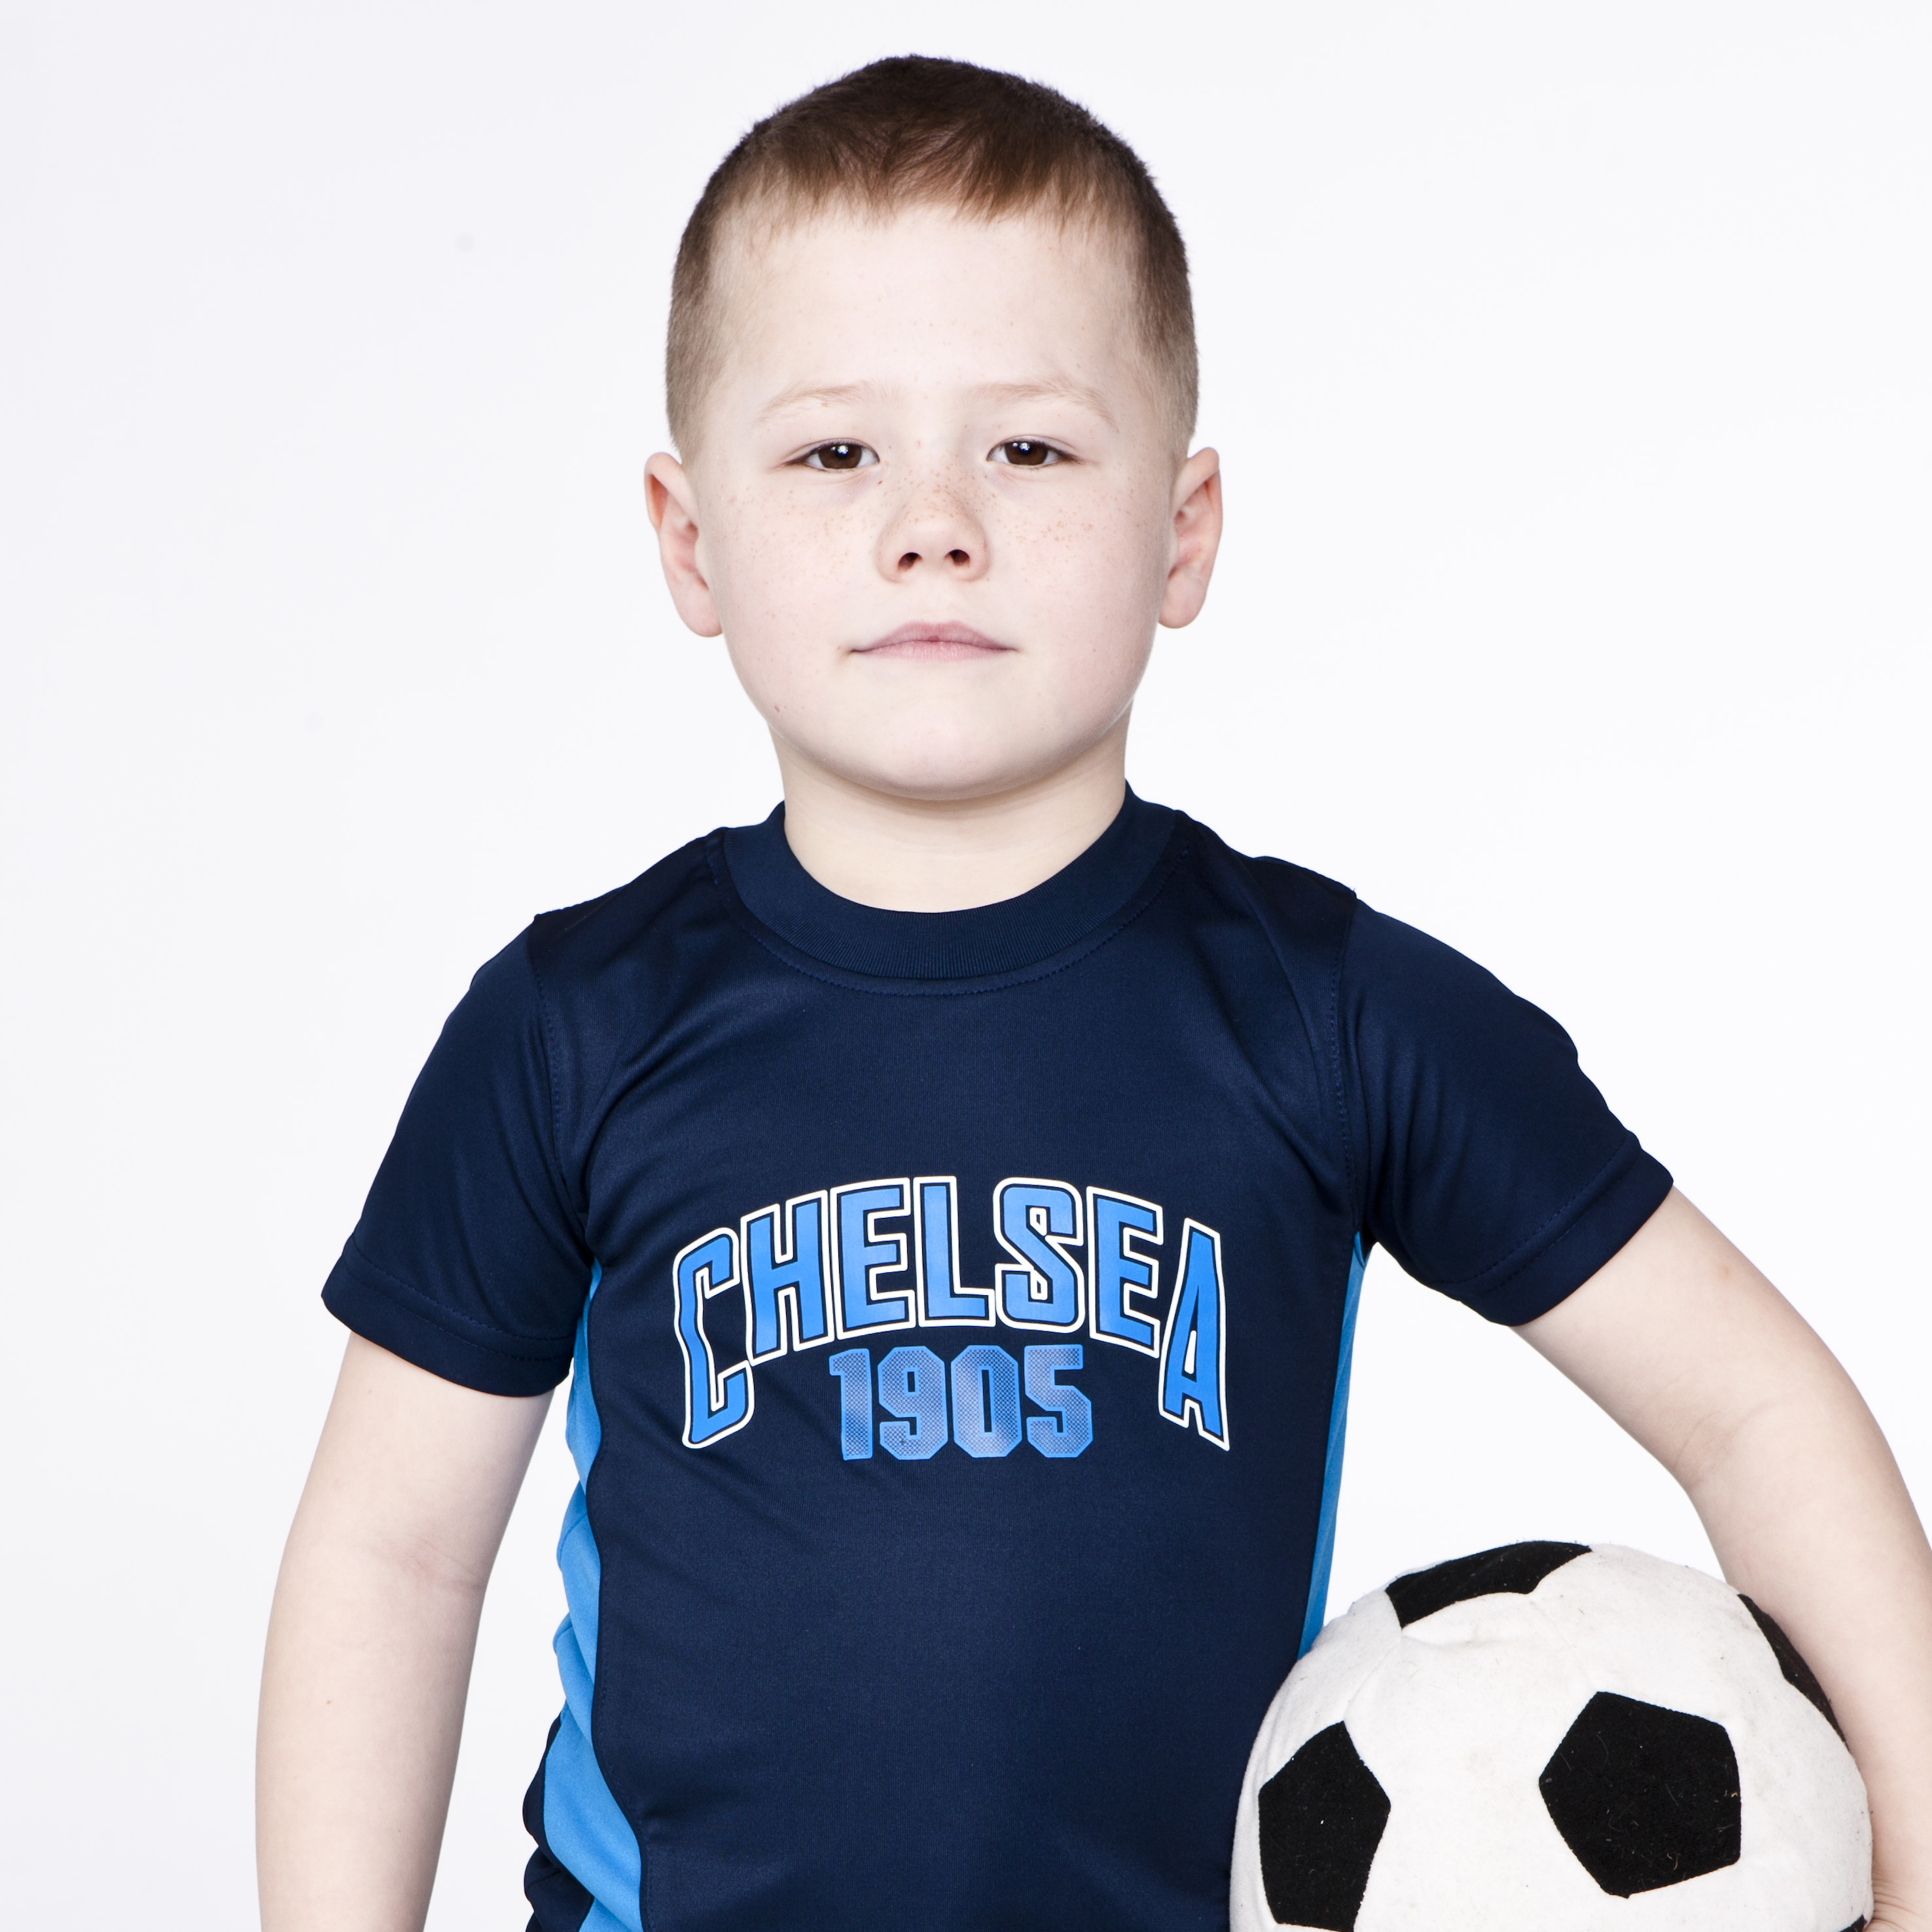 Chelsea Core Poly Panel 1905 Graphic T-Shirt - Light Navy - Infant Boys